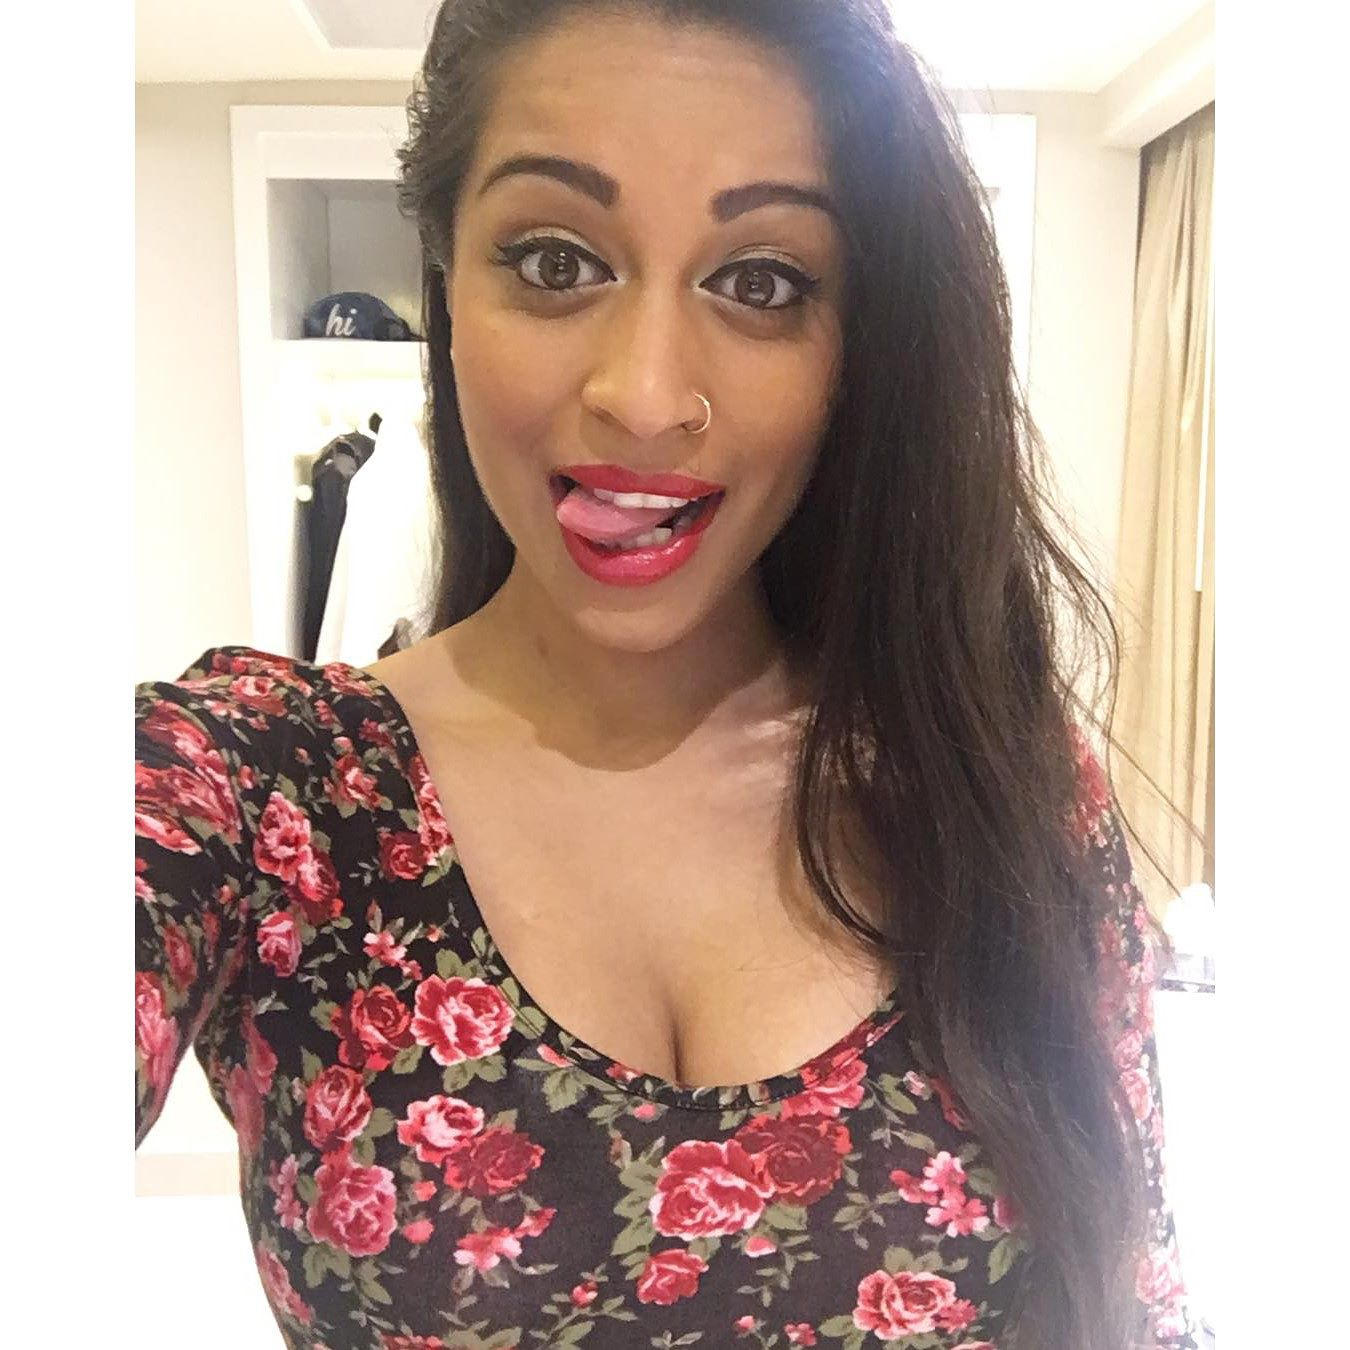 Andria Sex Video superwoman lilly singh hot - megapornx